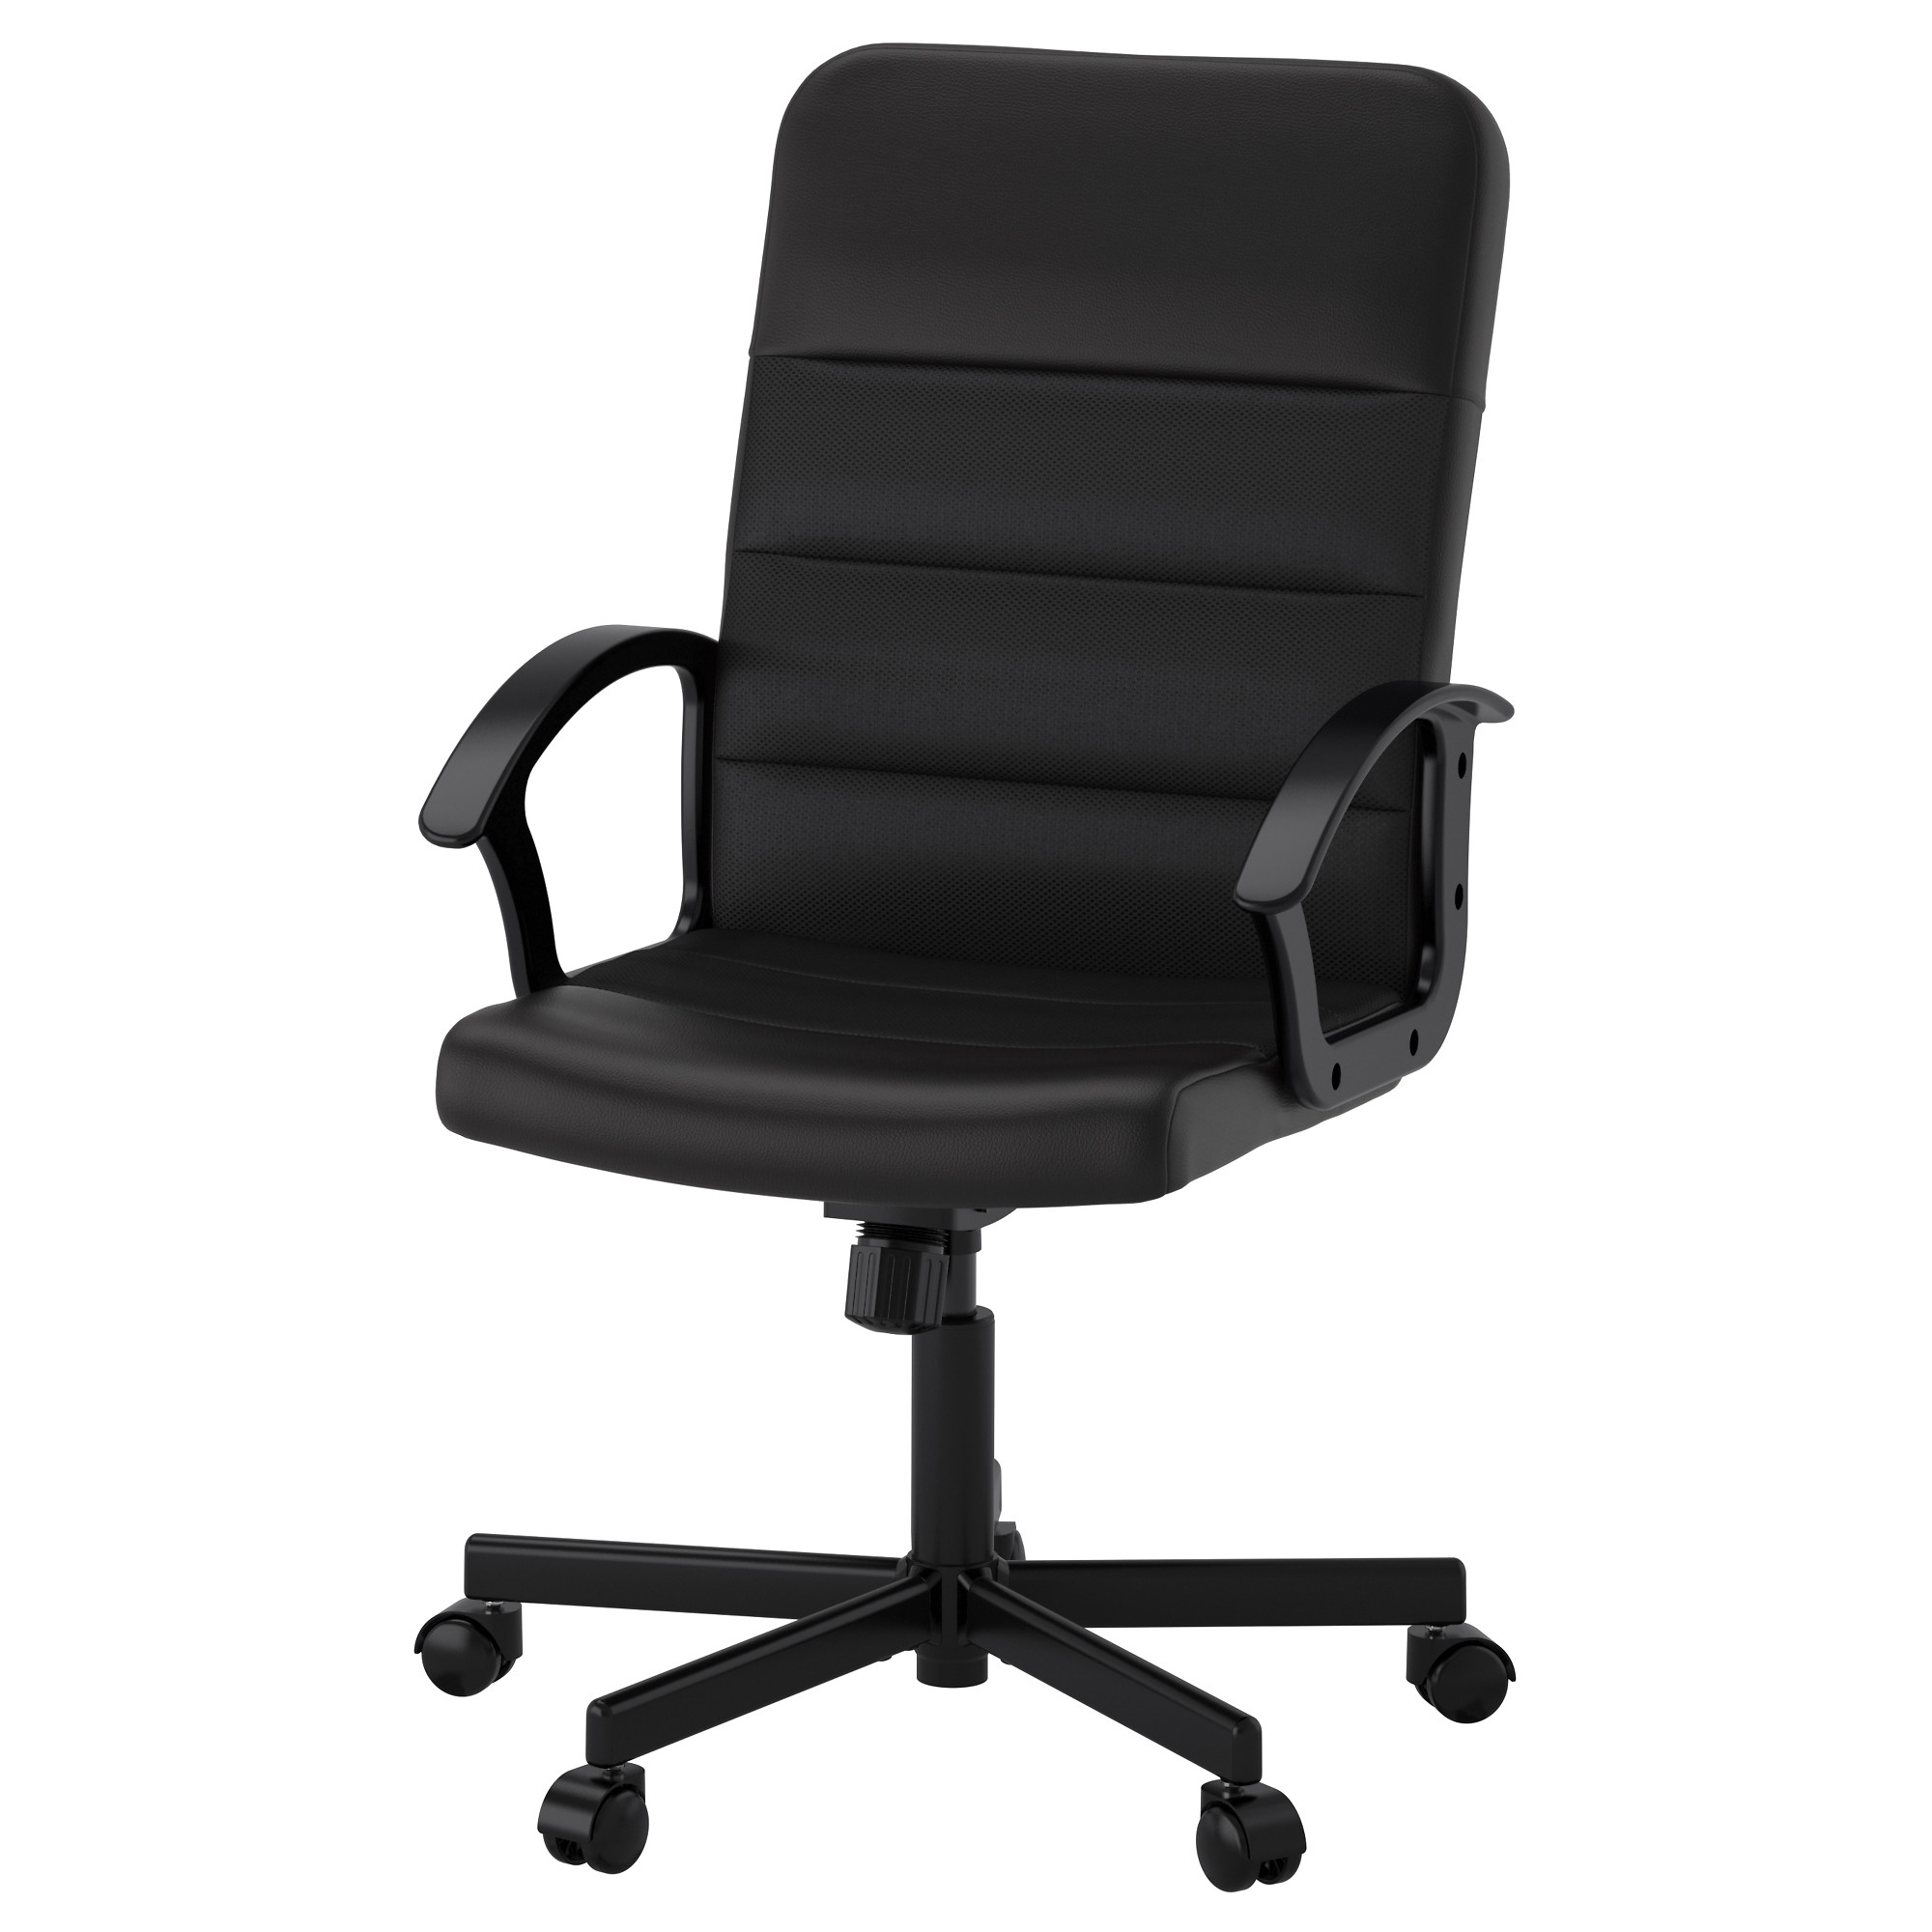 Swivel ChairsIKEA